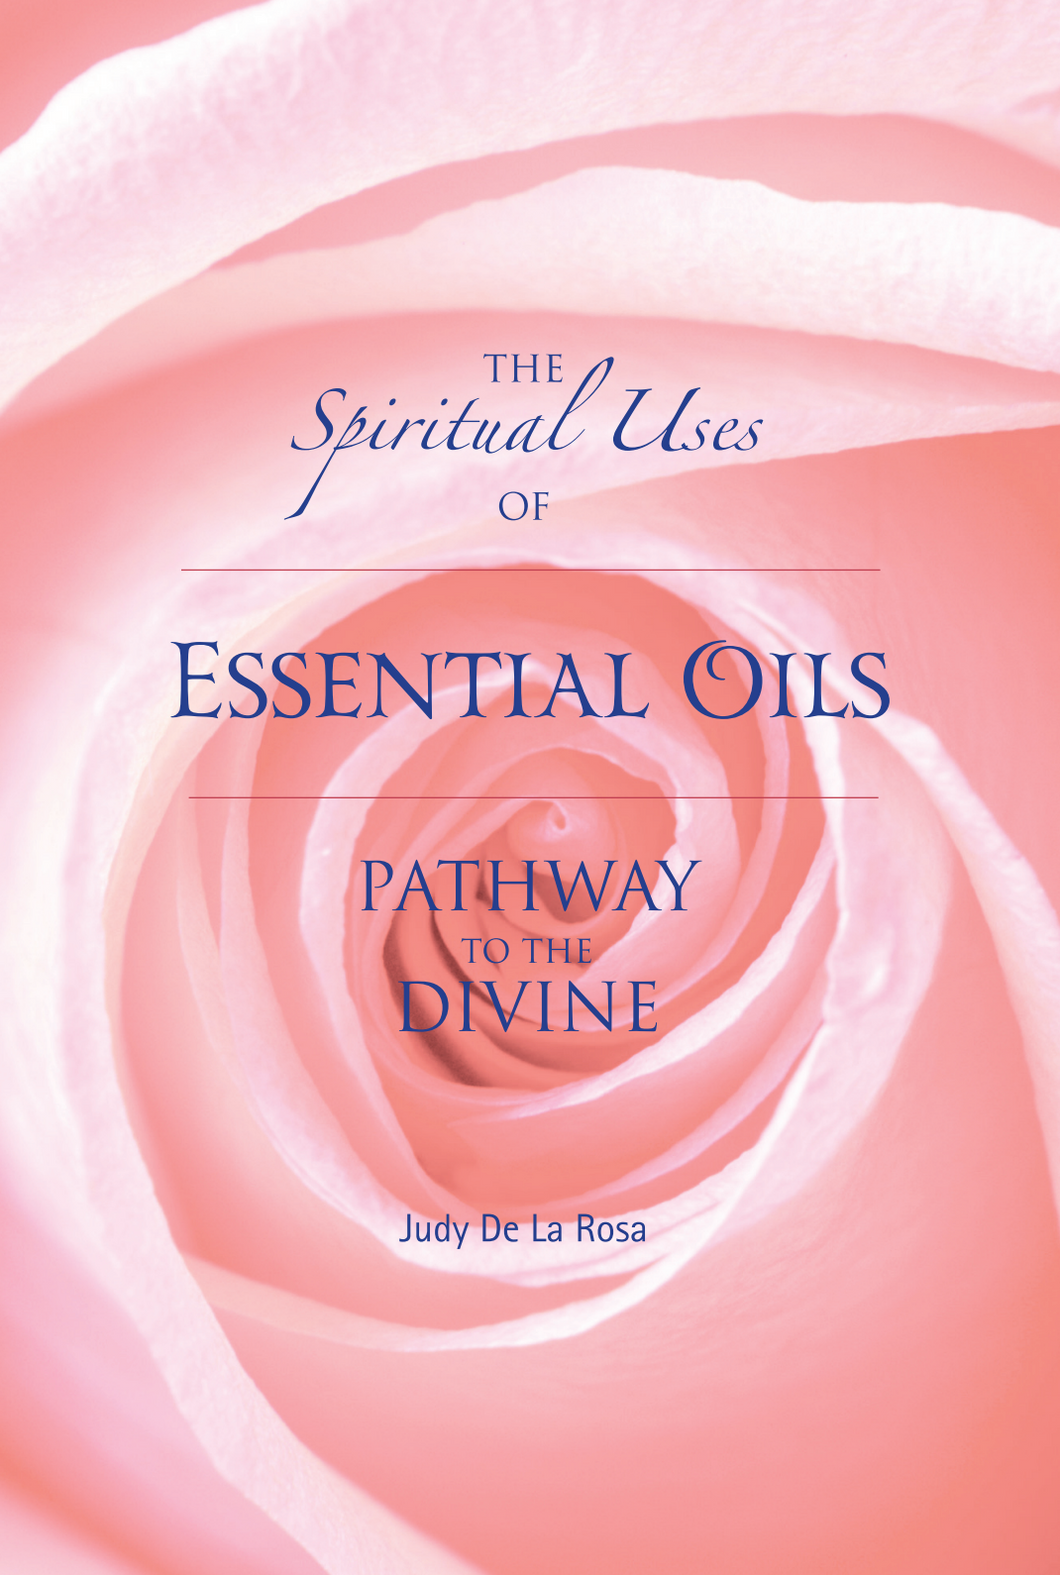 The Spiritual Uses of Essential Oils, Pathway to the Divine